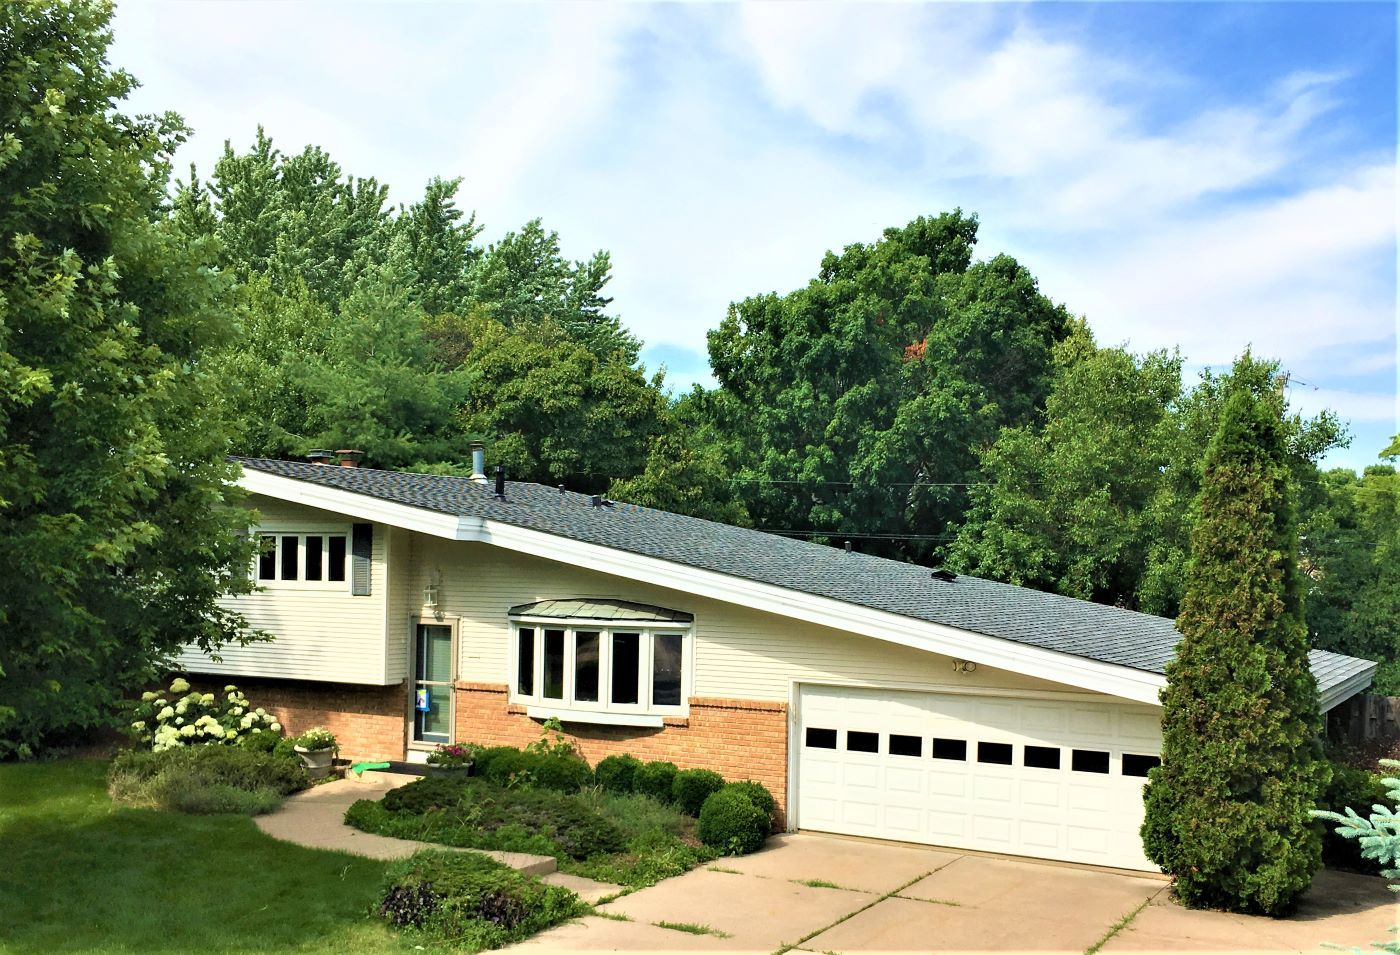 Best Asphalt Roof Minneapolis Gaf Roofing Wood Shakes Roof 400 x 300